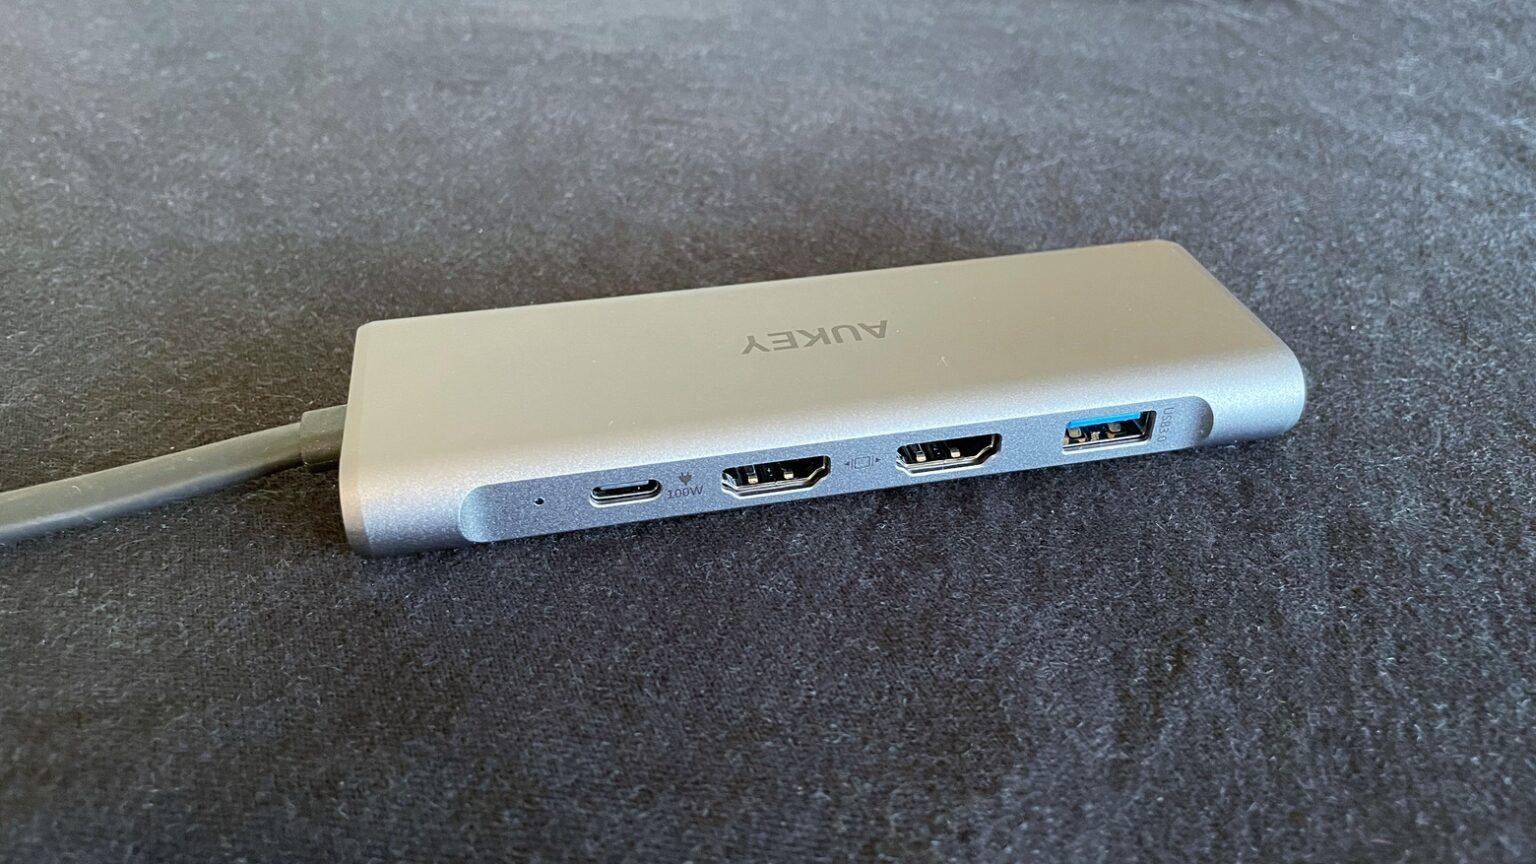 Aukey 9-in-2 USB-C Hub review